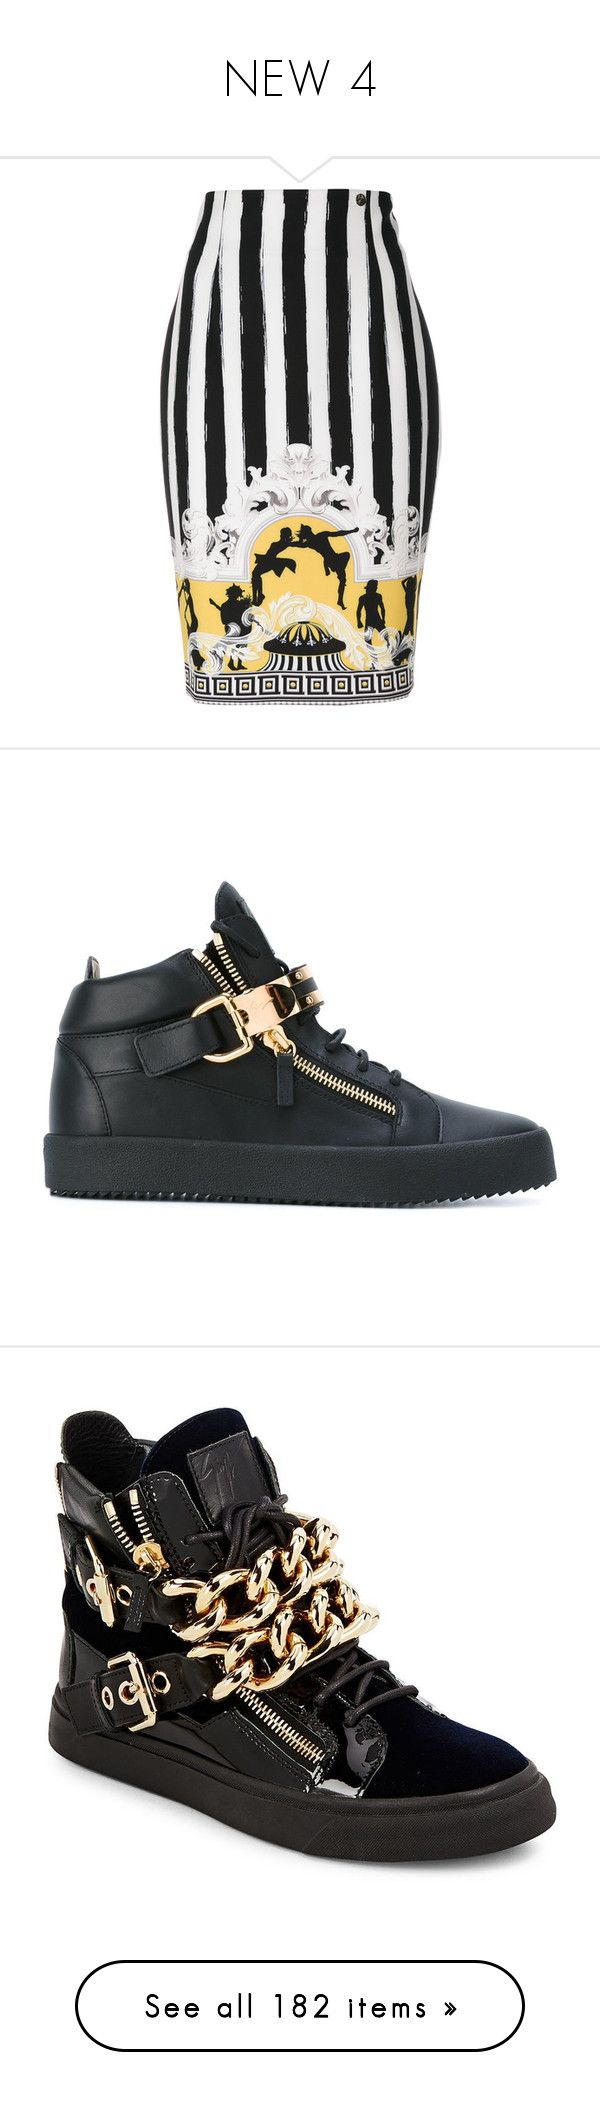 """NEW 4"" by ruffin777 ❤ liked on Polyvore featuring skirts, versace skirt, baroque skirt, versace, men's fashion, men's shoes, men's sneakers, black, giuseppe zanotti mens shoes and mens high top sneakers"